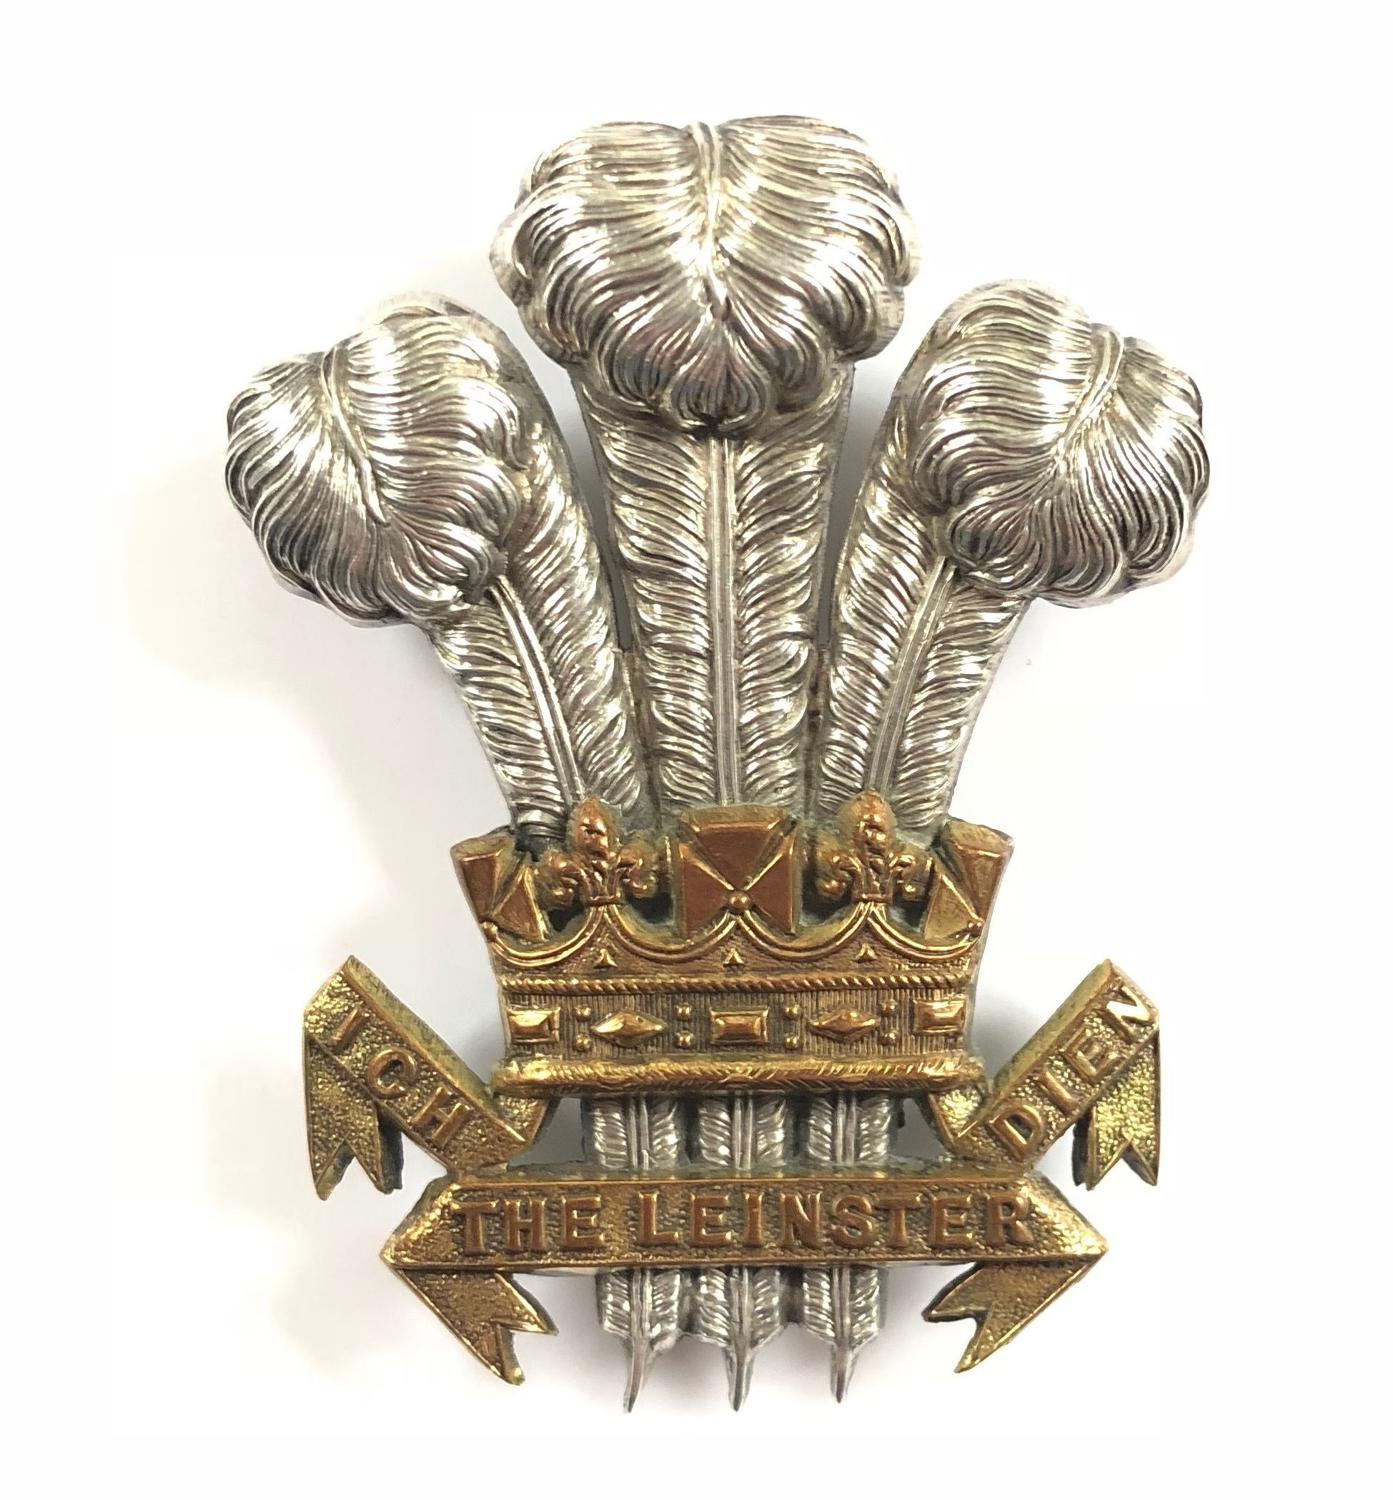 Irish: Leinster Regiment Victorian Officer's forage cap badge